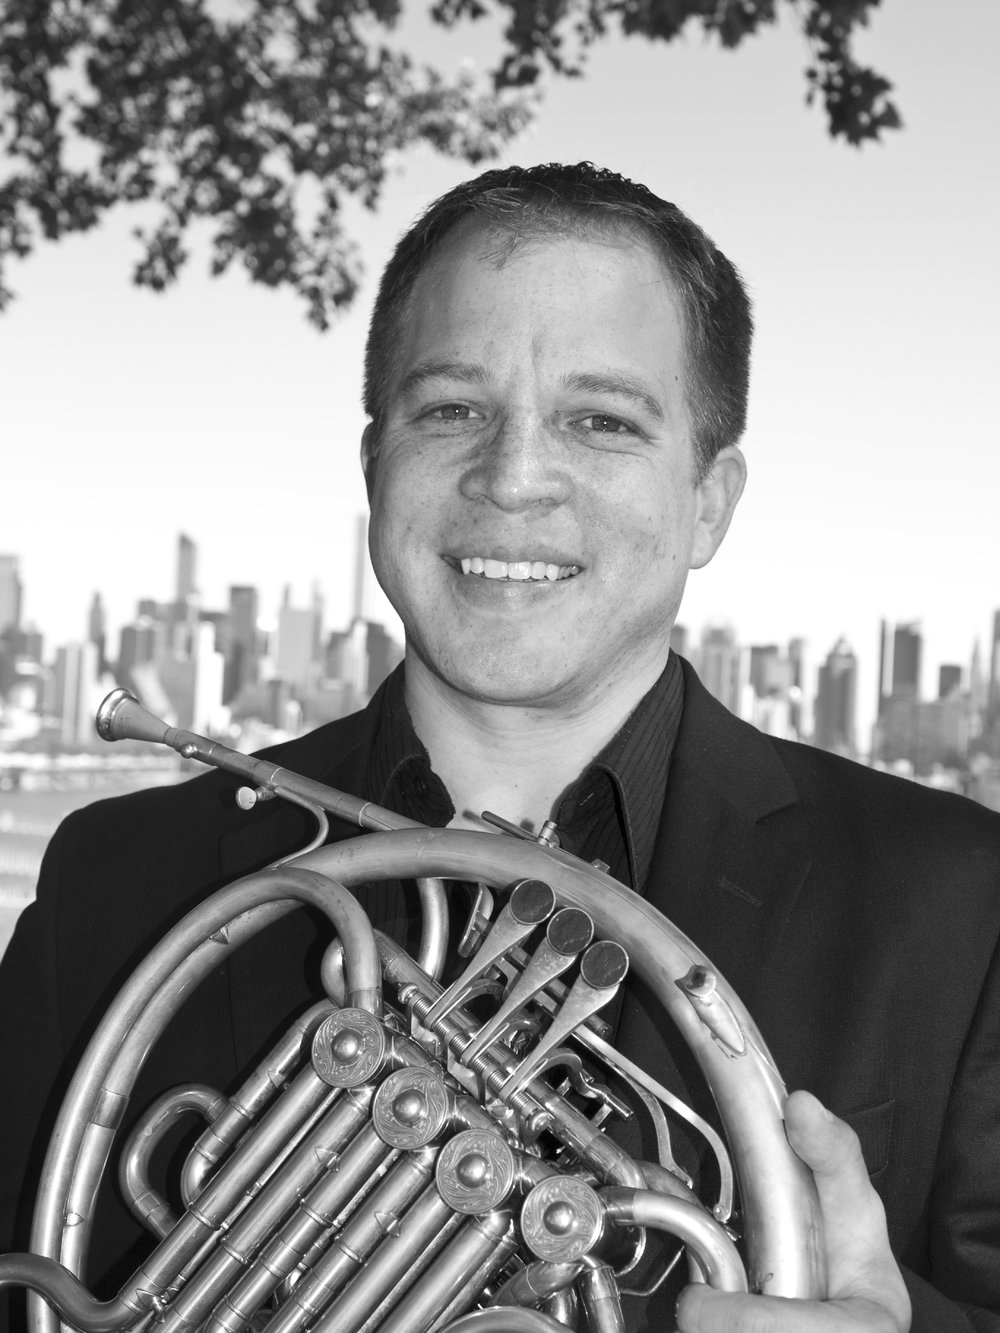 Kyle Hoyt - French HornKyle Hoyt is an active French Horn player and teacher in the NYC metropolitan area and beyond. Kyle can be heard frequently playing with the American, New Haven Symphony Orchestras, Orchestra of St. Lukes, St. Paul Chamber Orchestra, and the Knights Chamber Orchestra. He performs regularly at the Bard Music Festival Orchestral and Chamber Music Programs. Previously he was Associate Principal horn of the Jerusalem Symphony Orchestra, and held full time positions with the Columbus and Syracuse Symphony Orchestras. He recently recorded with Yo-Yo Ma and the Knights. Kyle was a member of the Broadway pit orchestras of Something Rotten, Sideshow, and the Radio City Christmas Spectacular Orchestra. Kyle has also recorded for Naxos, Telarc, Nimbus Records, CBS, and NFL Films.He currently serves as French Horn Faculty at Montclair State University in Montclair, New Jersey. He has given masterclasses at the University of Michigan, the Ohio State University, Bowling Green State University, and the University of Kansas.He studied at the University of Michigan and Manhattan School of Music. His principal teachers were Bryan Kennedy, Soren Hermansson, Erik Ralske, and Jeffrey Lang.